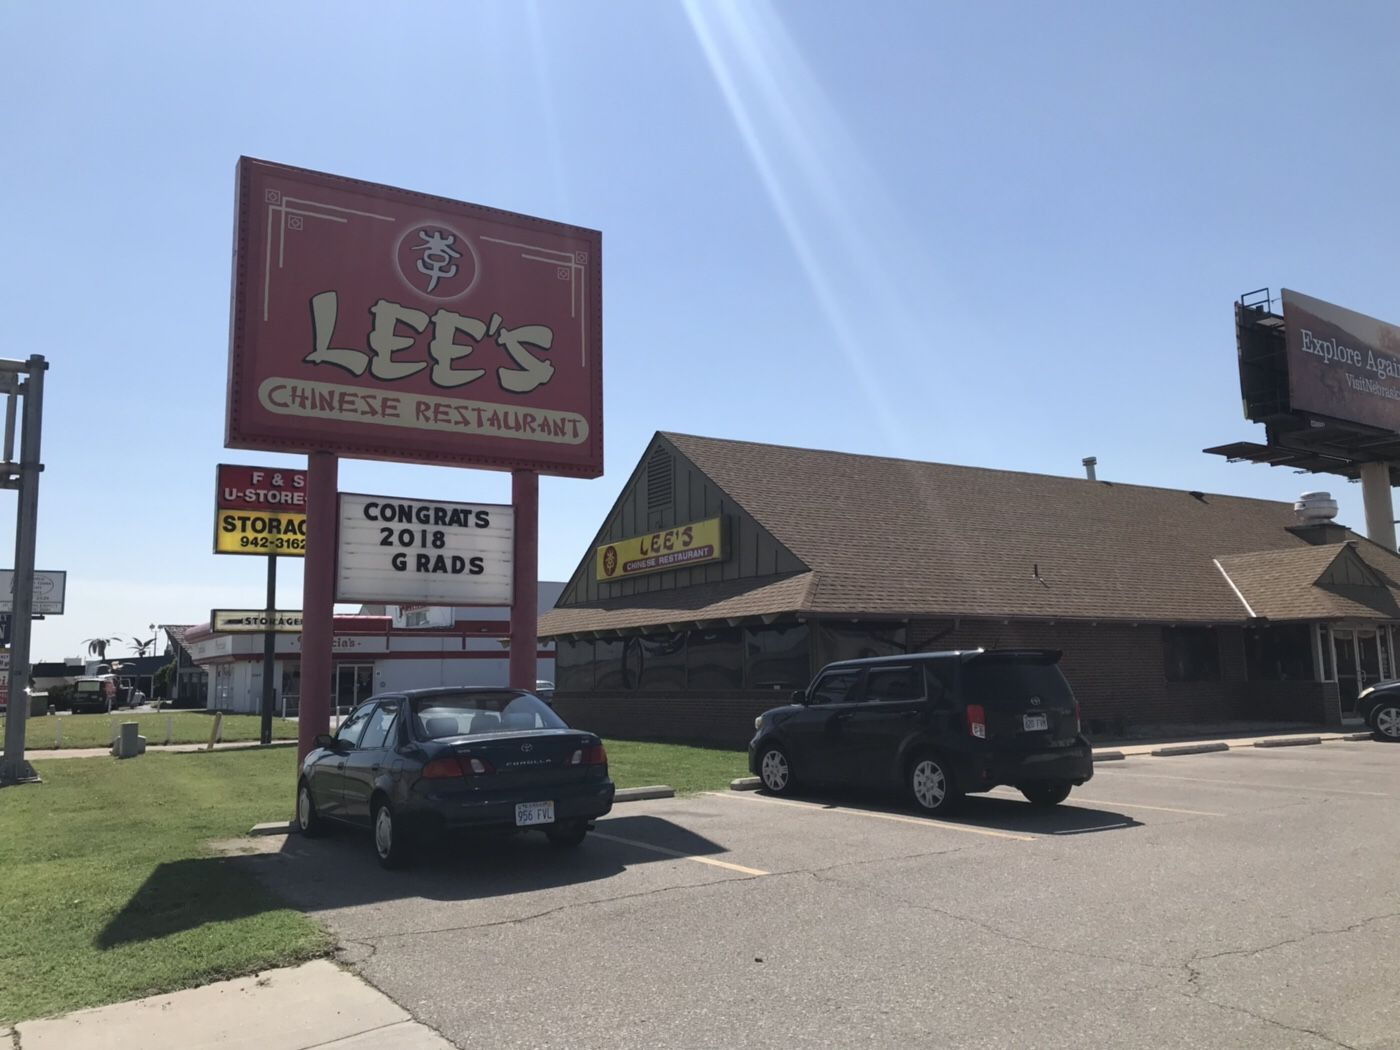 Lee S Chinese Restaurant So Much Better Than Traditional Fast Food Wichita By E B Chinese Restaurant Fast Food Restaurant